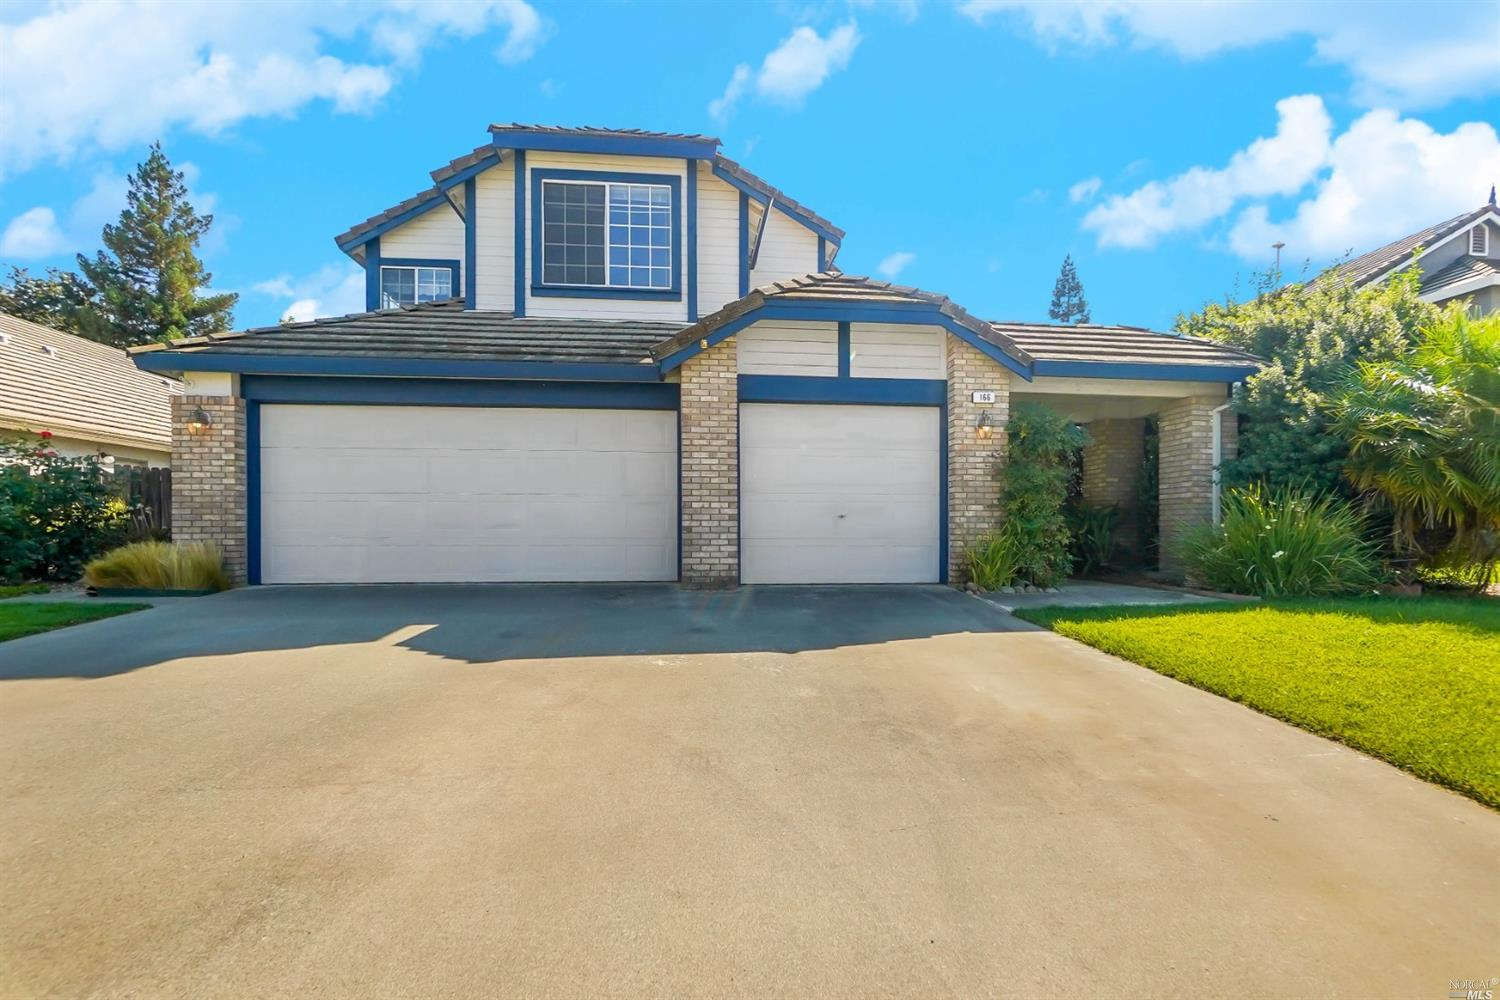 Are you ready to move in and make lasting memories? Beautiful move in ready home located in a court